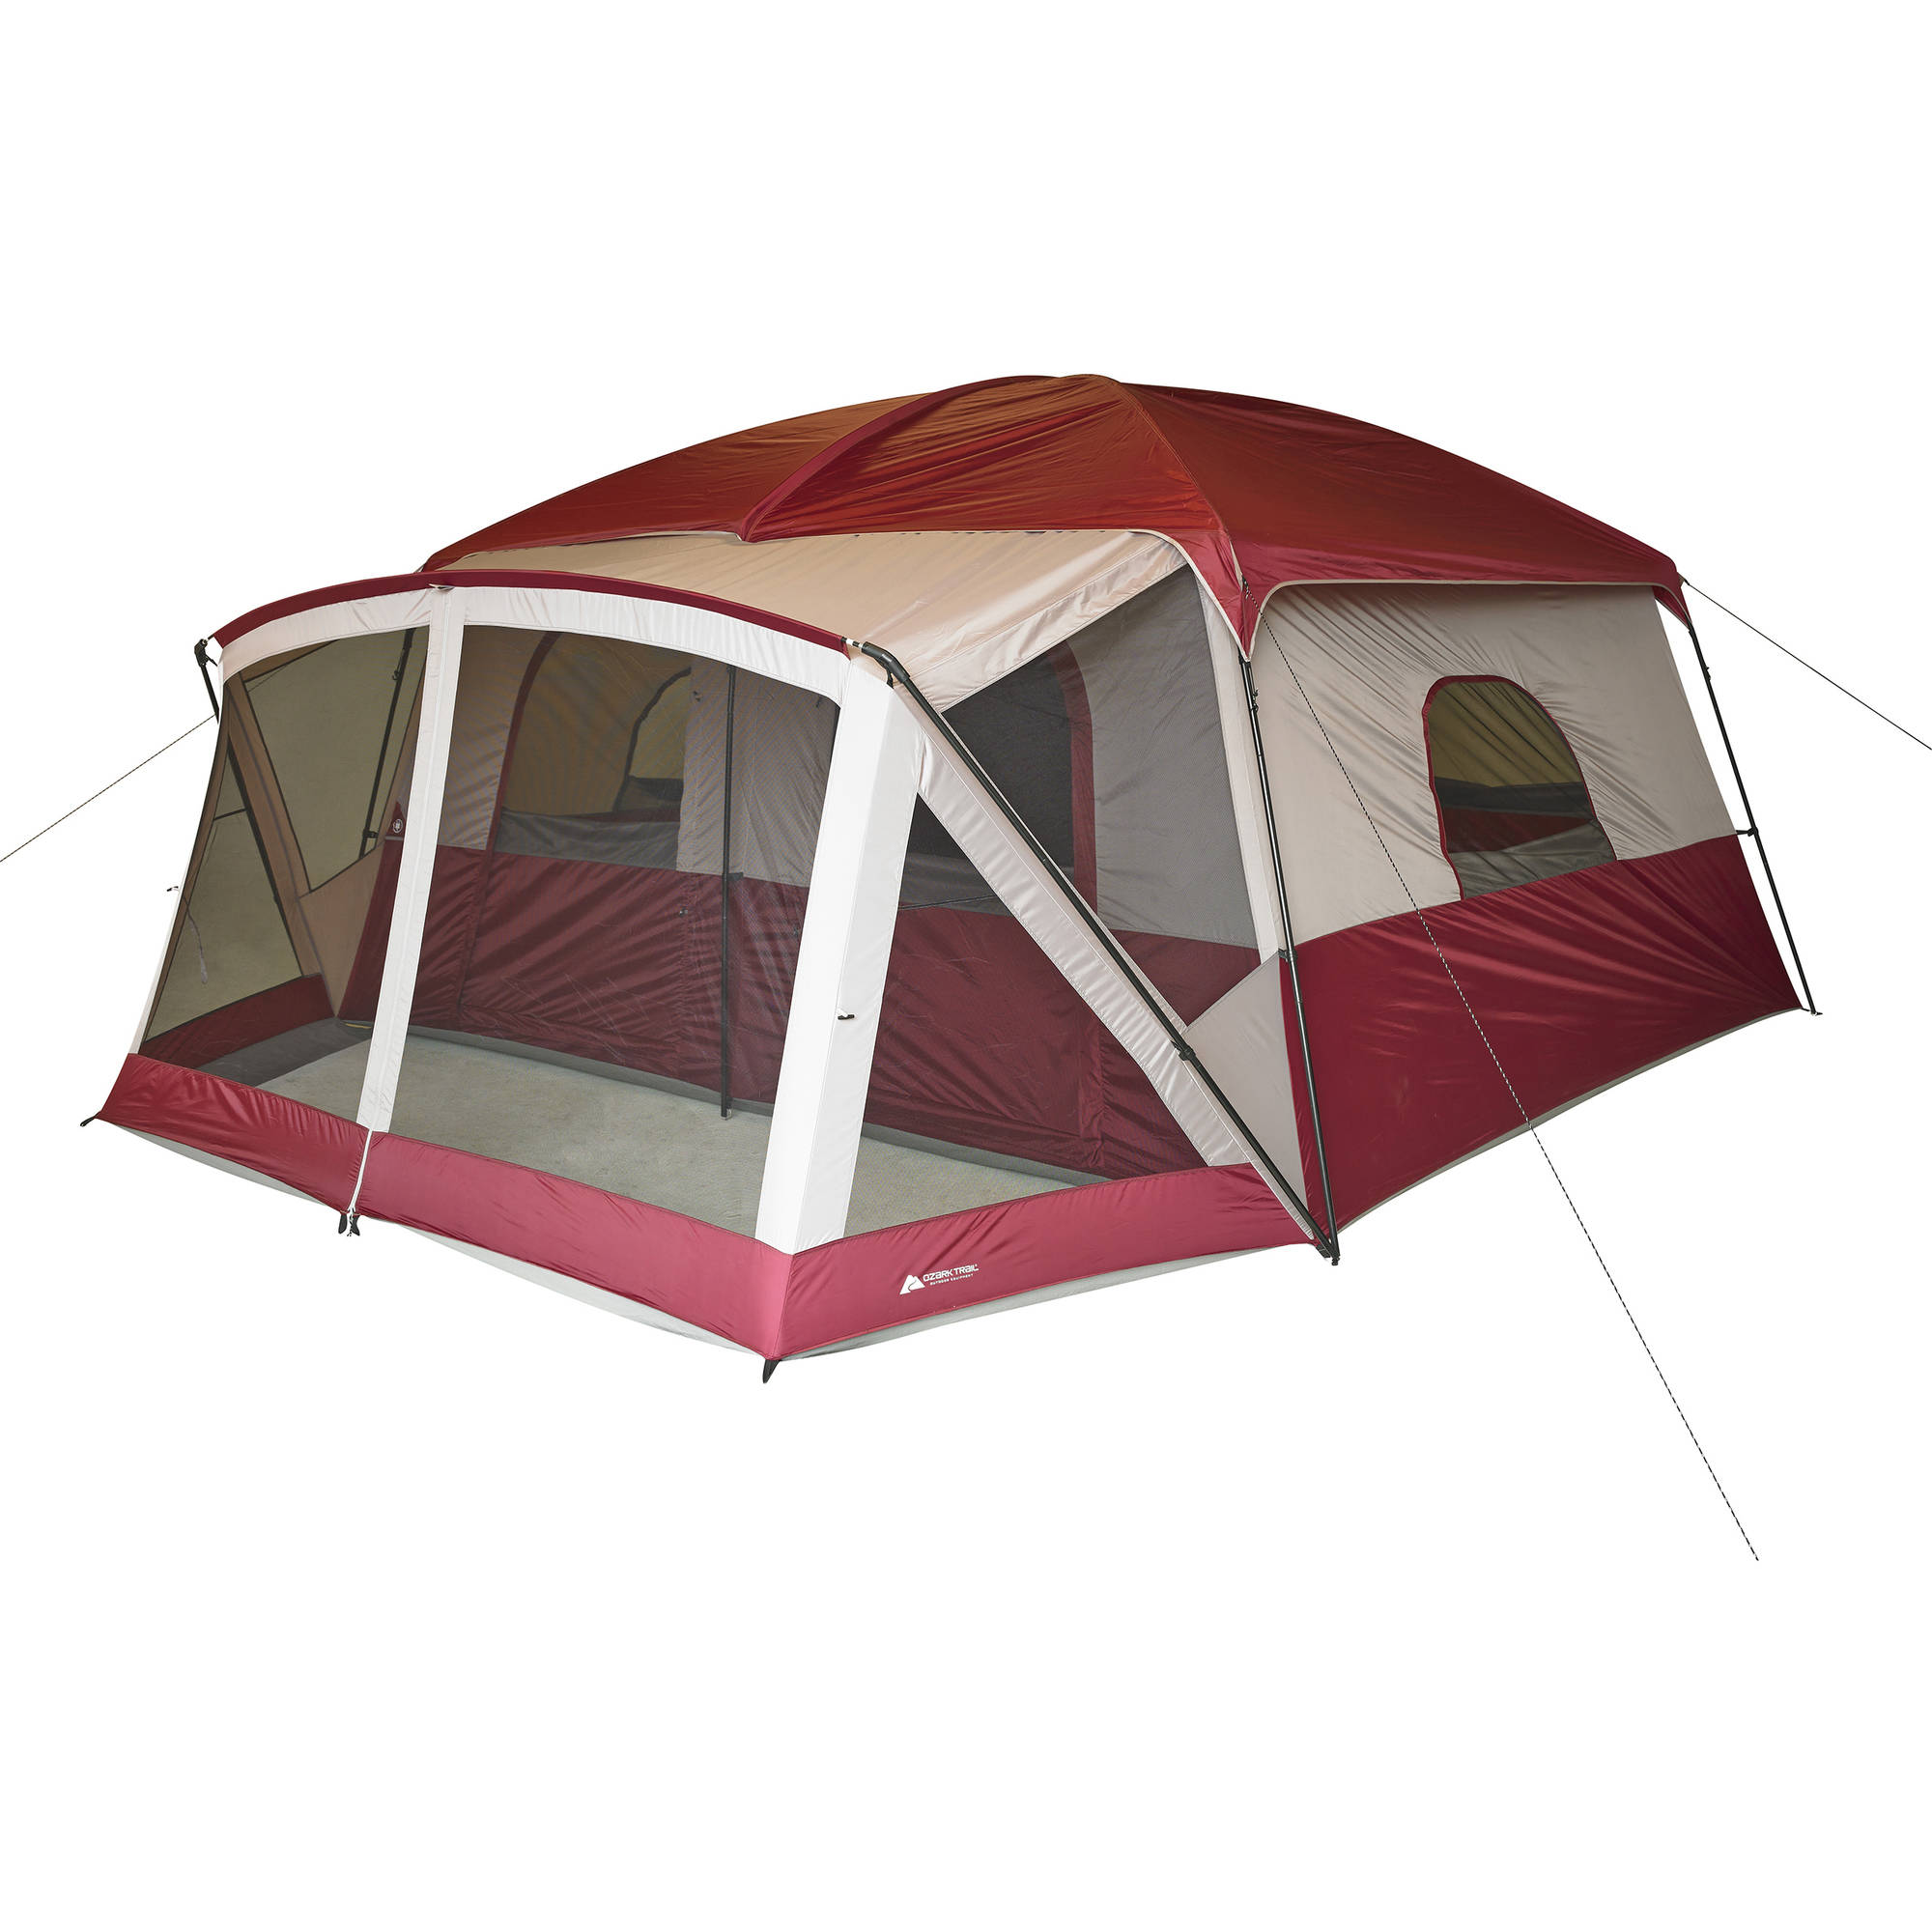 Ordinaire Ozark Trail 12 Person Cabin Tent With Screen Porch   Walmart.com